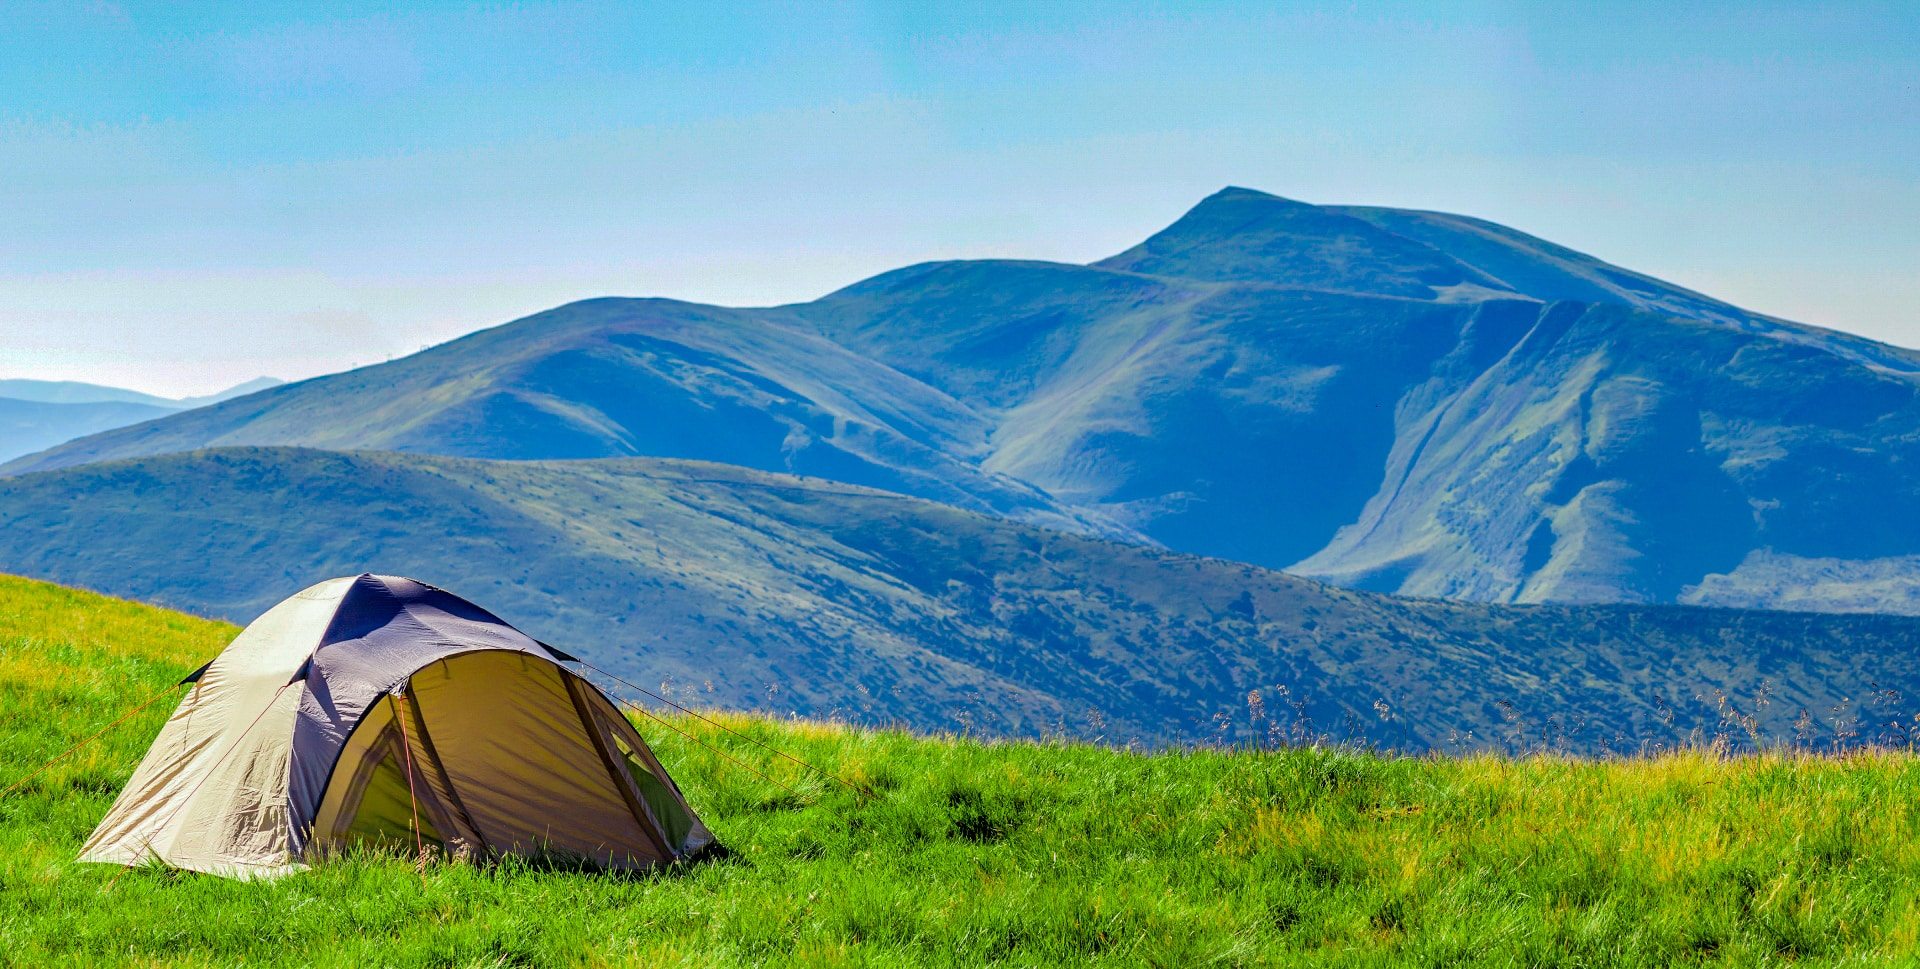 A tent pitched in front of rolling hills